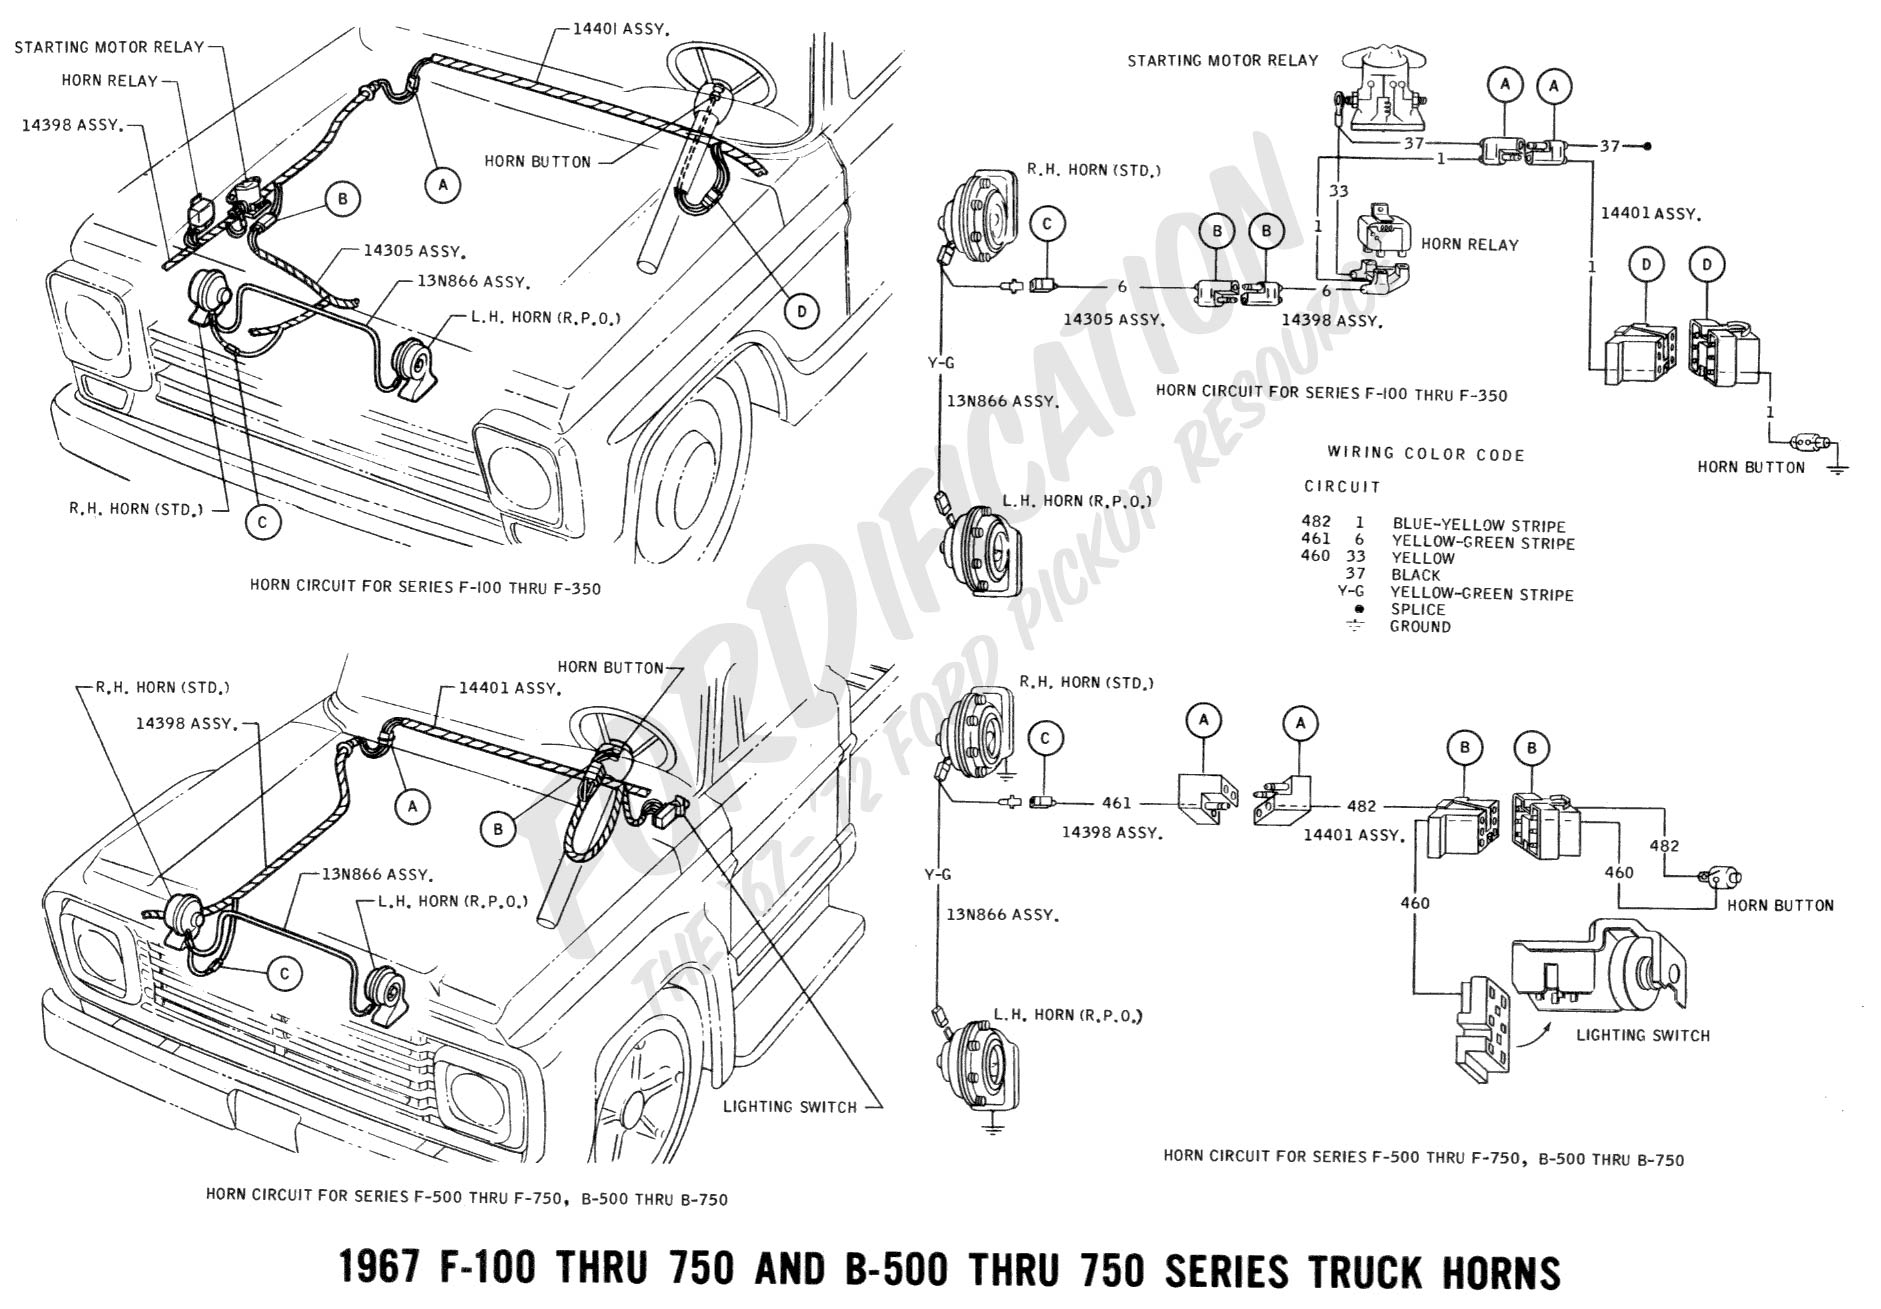 hight resolution of 1975 ford f100 wiring diagram wiring diagrams konsult ignition wiring diagram 1975 ford f100 390